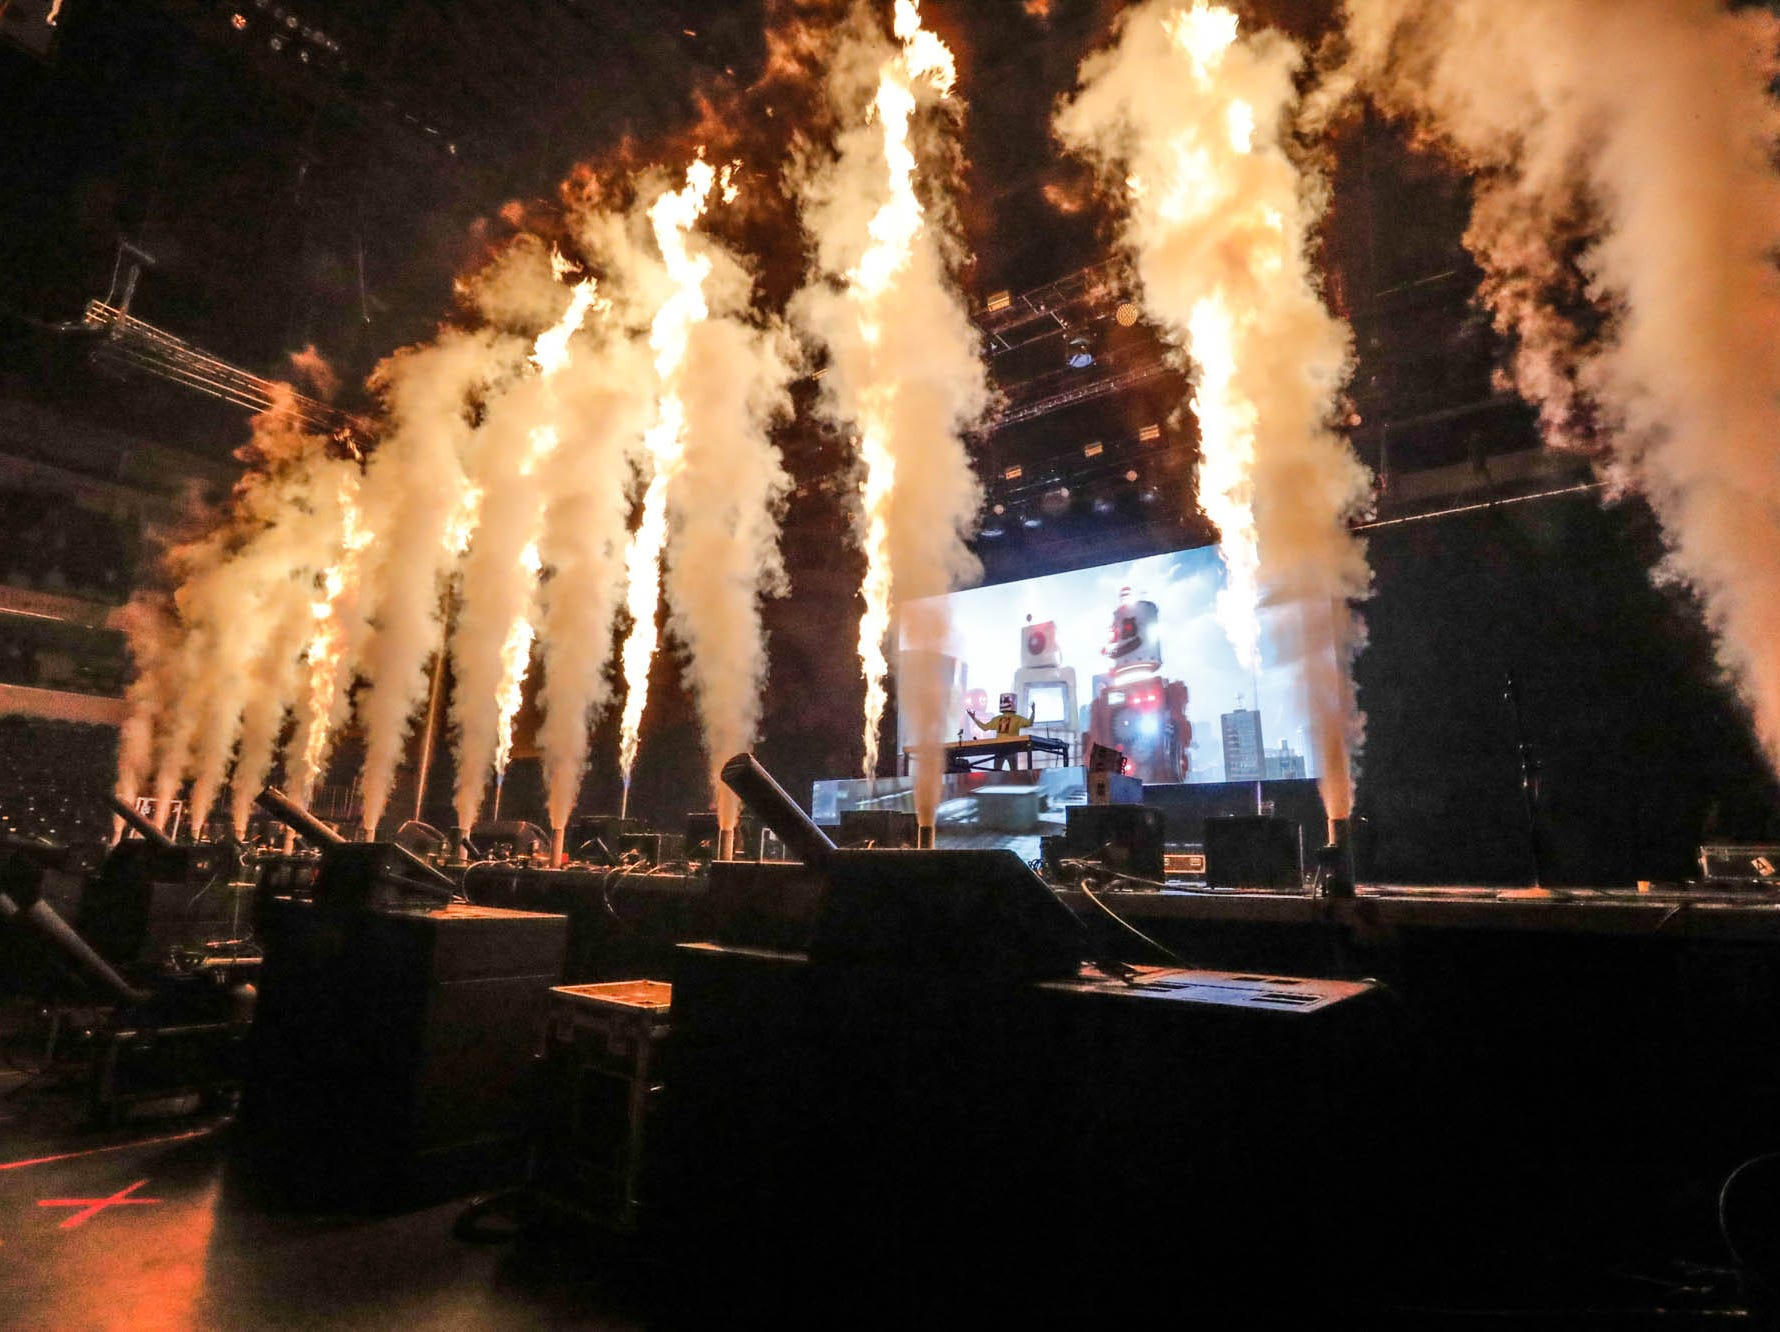 Marshmello performs during the 2018 Jingle Jam concert at Bankers Life Fieldhouse in Indianapolis on Tuesday, Dec. 12, 2018.